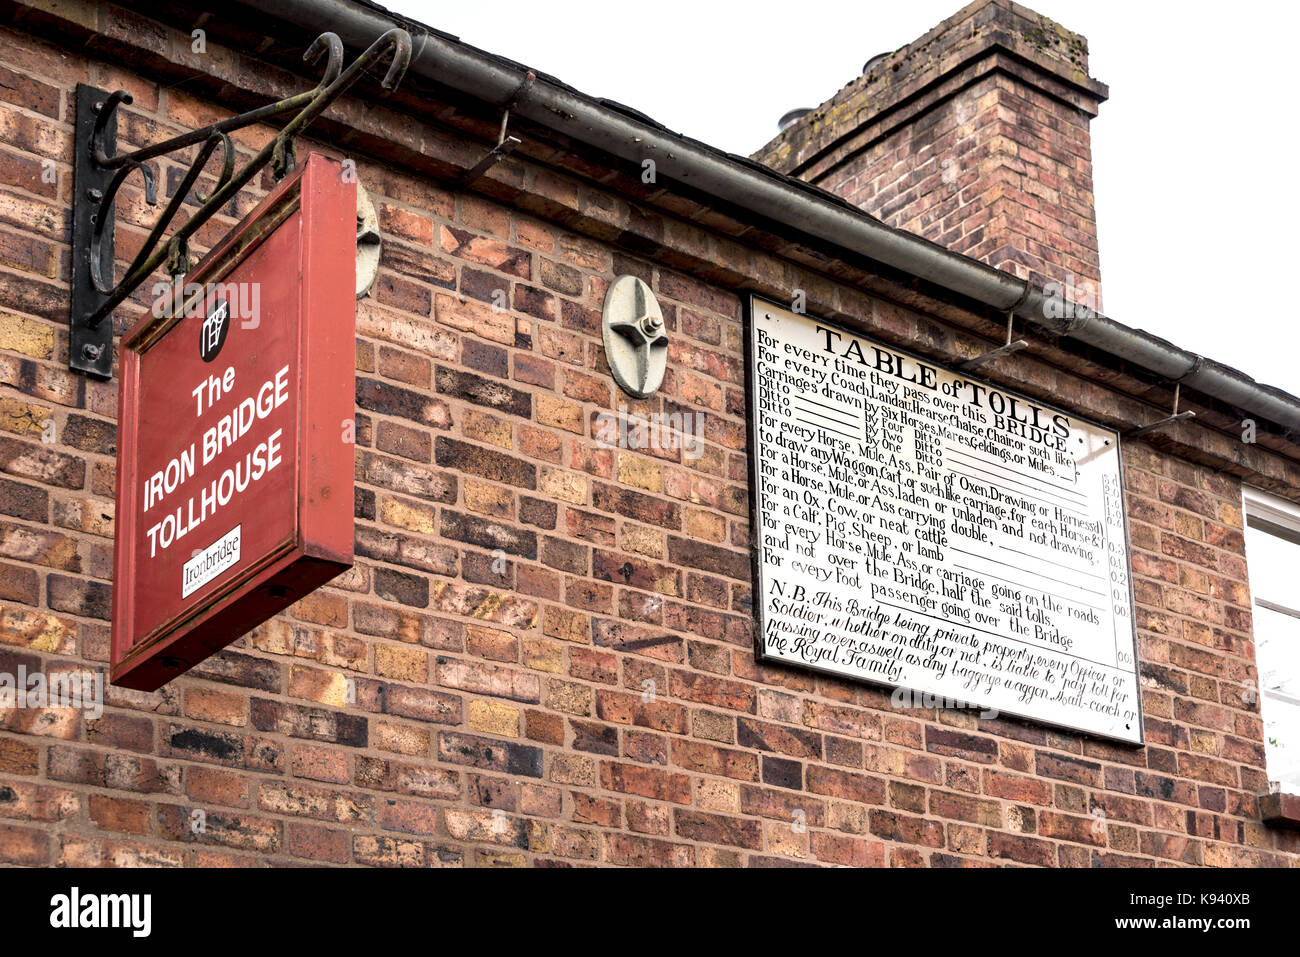 Telford Iron Bridge, tollhouse sign charges, vintage board showing tariff. - Stock Image